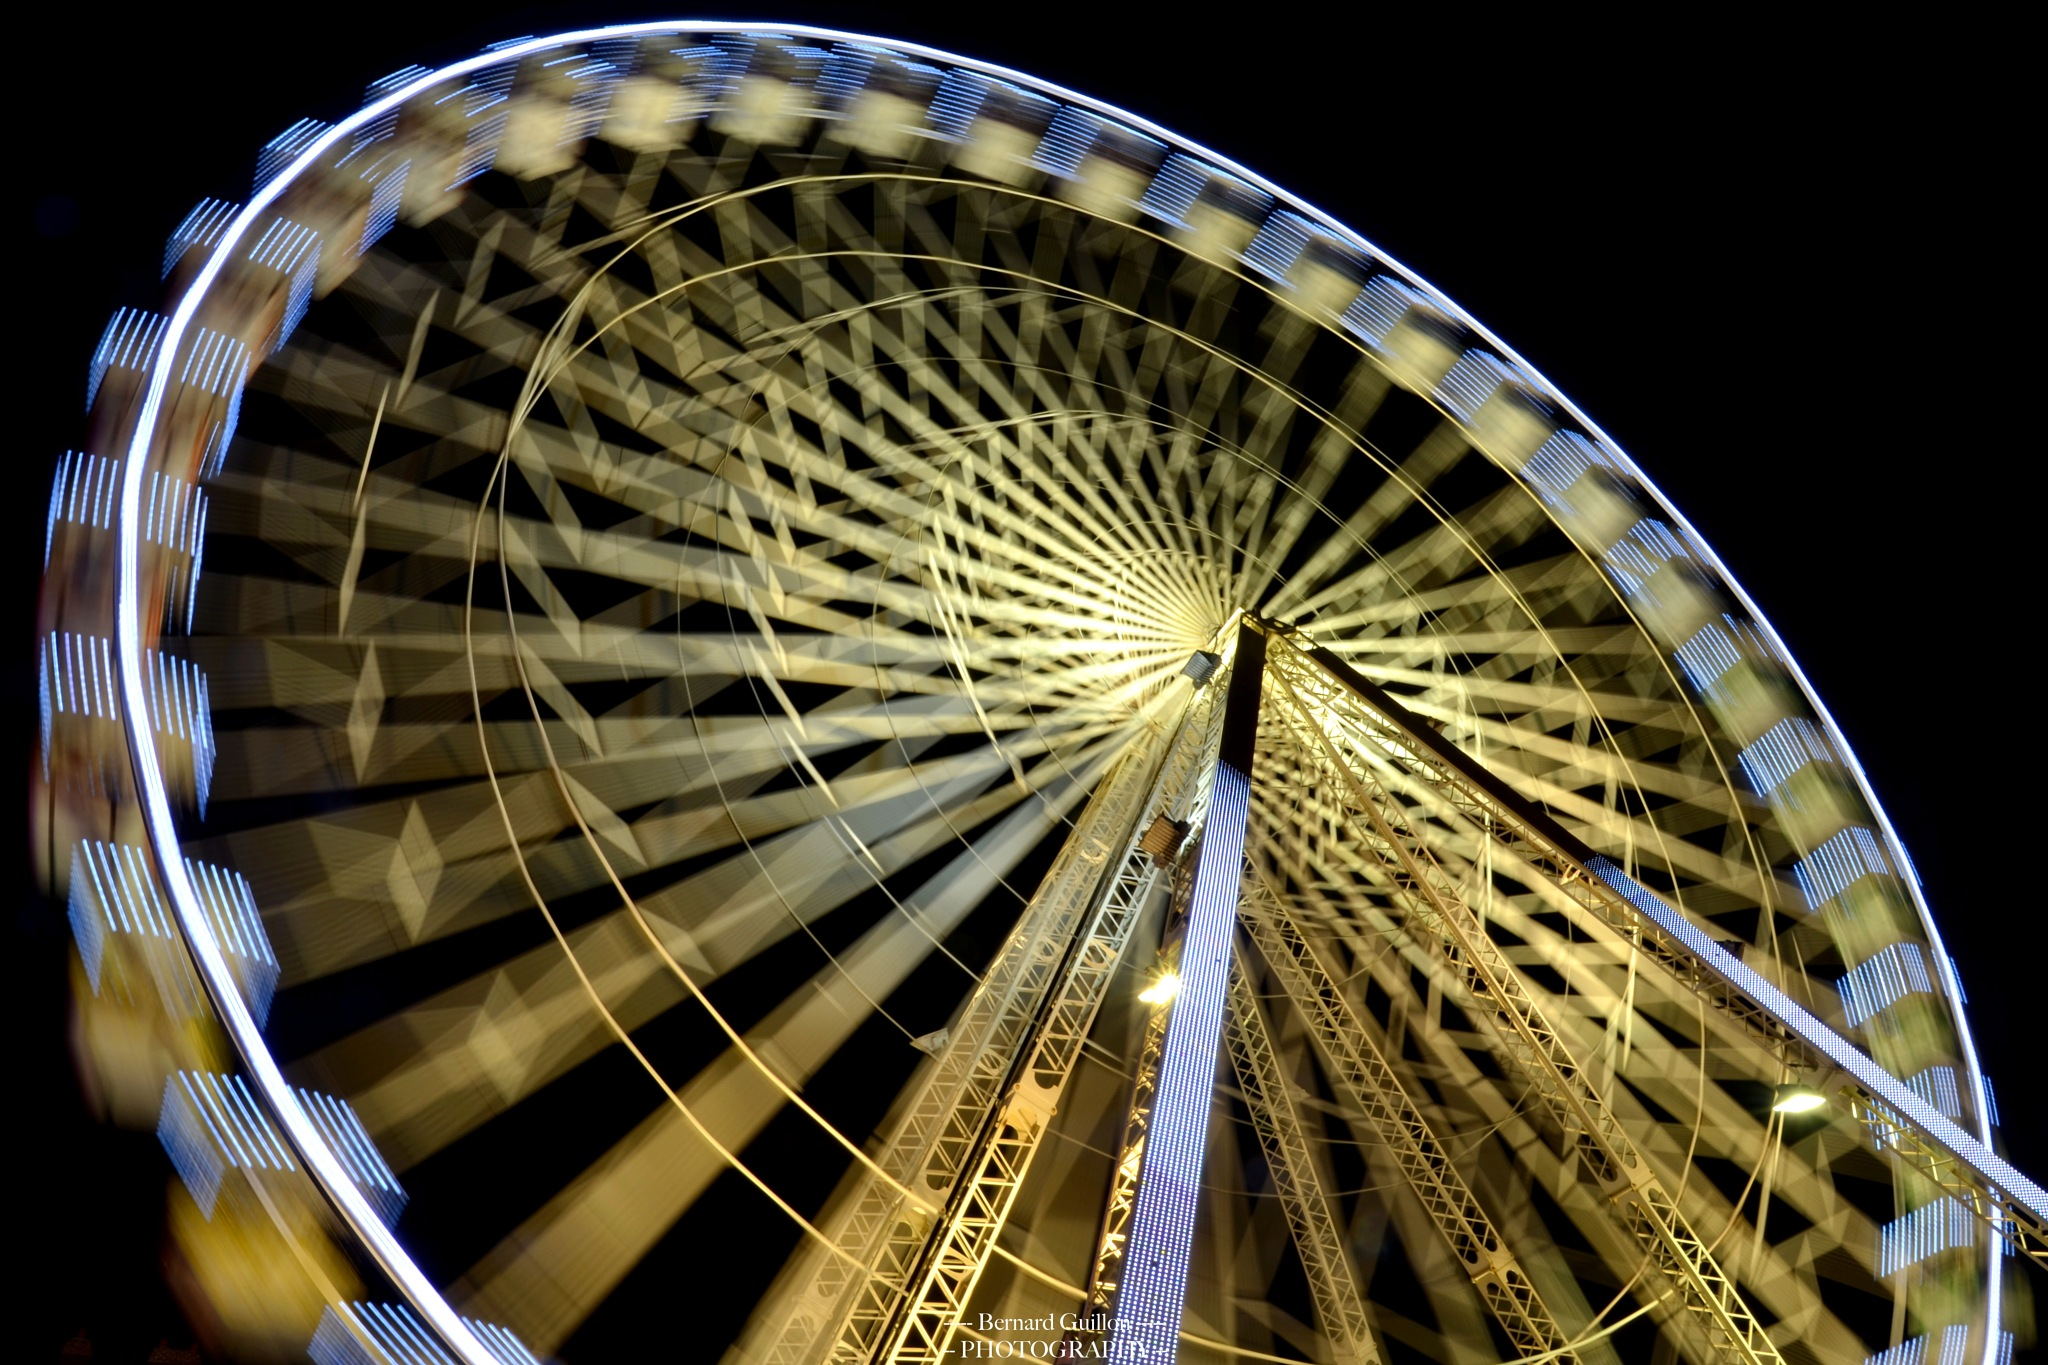 The big wheel in motion by Bernard Guillon